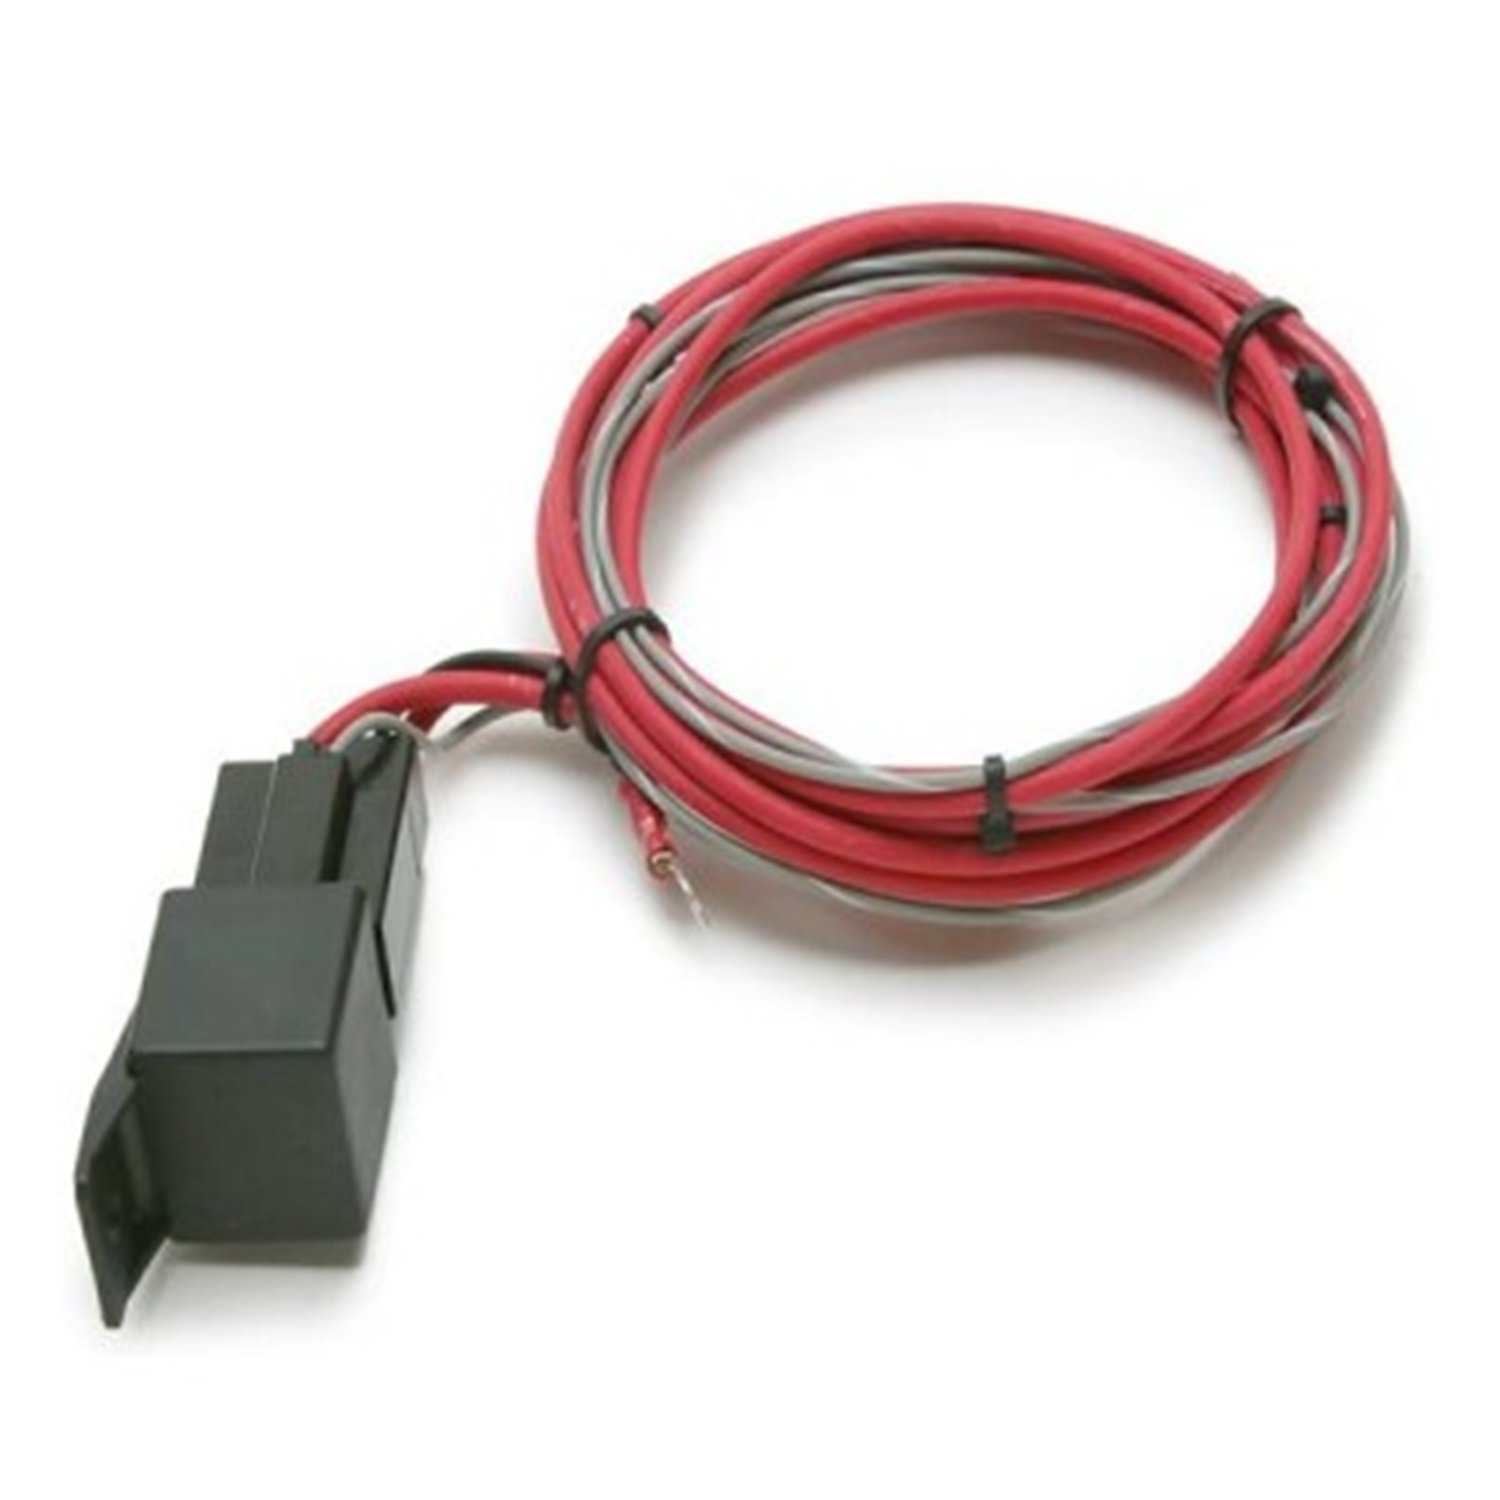 61Wk1U0jD0L._SL1500_ amazon com painless 30100 (70 amp) fan relay kit automotive painless wiring harness rebate at sewacar.co